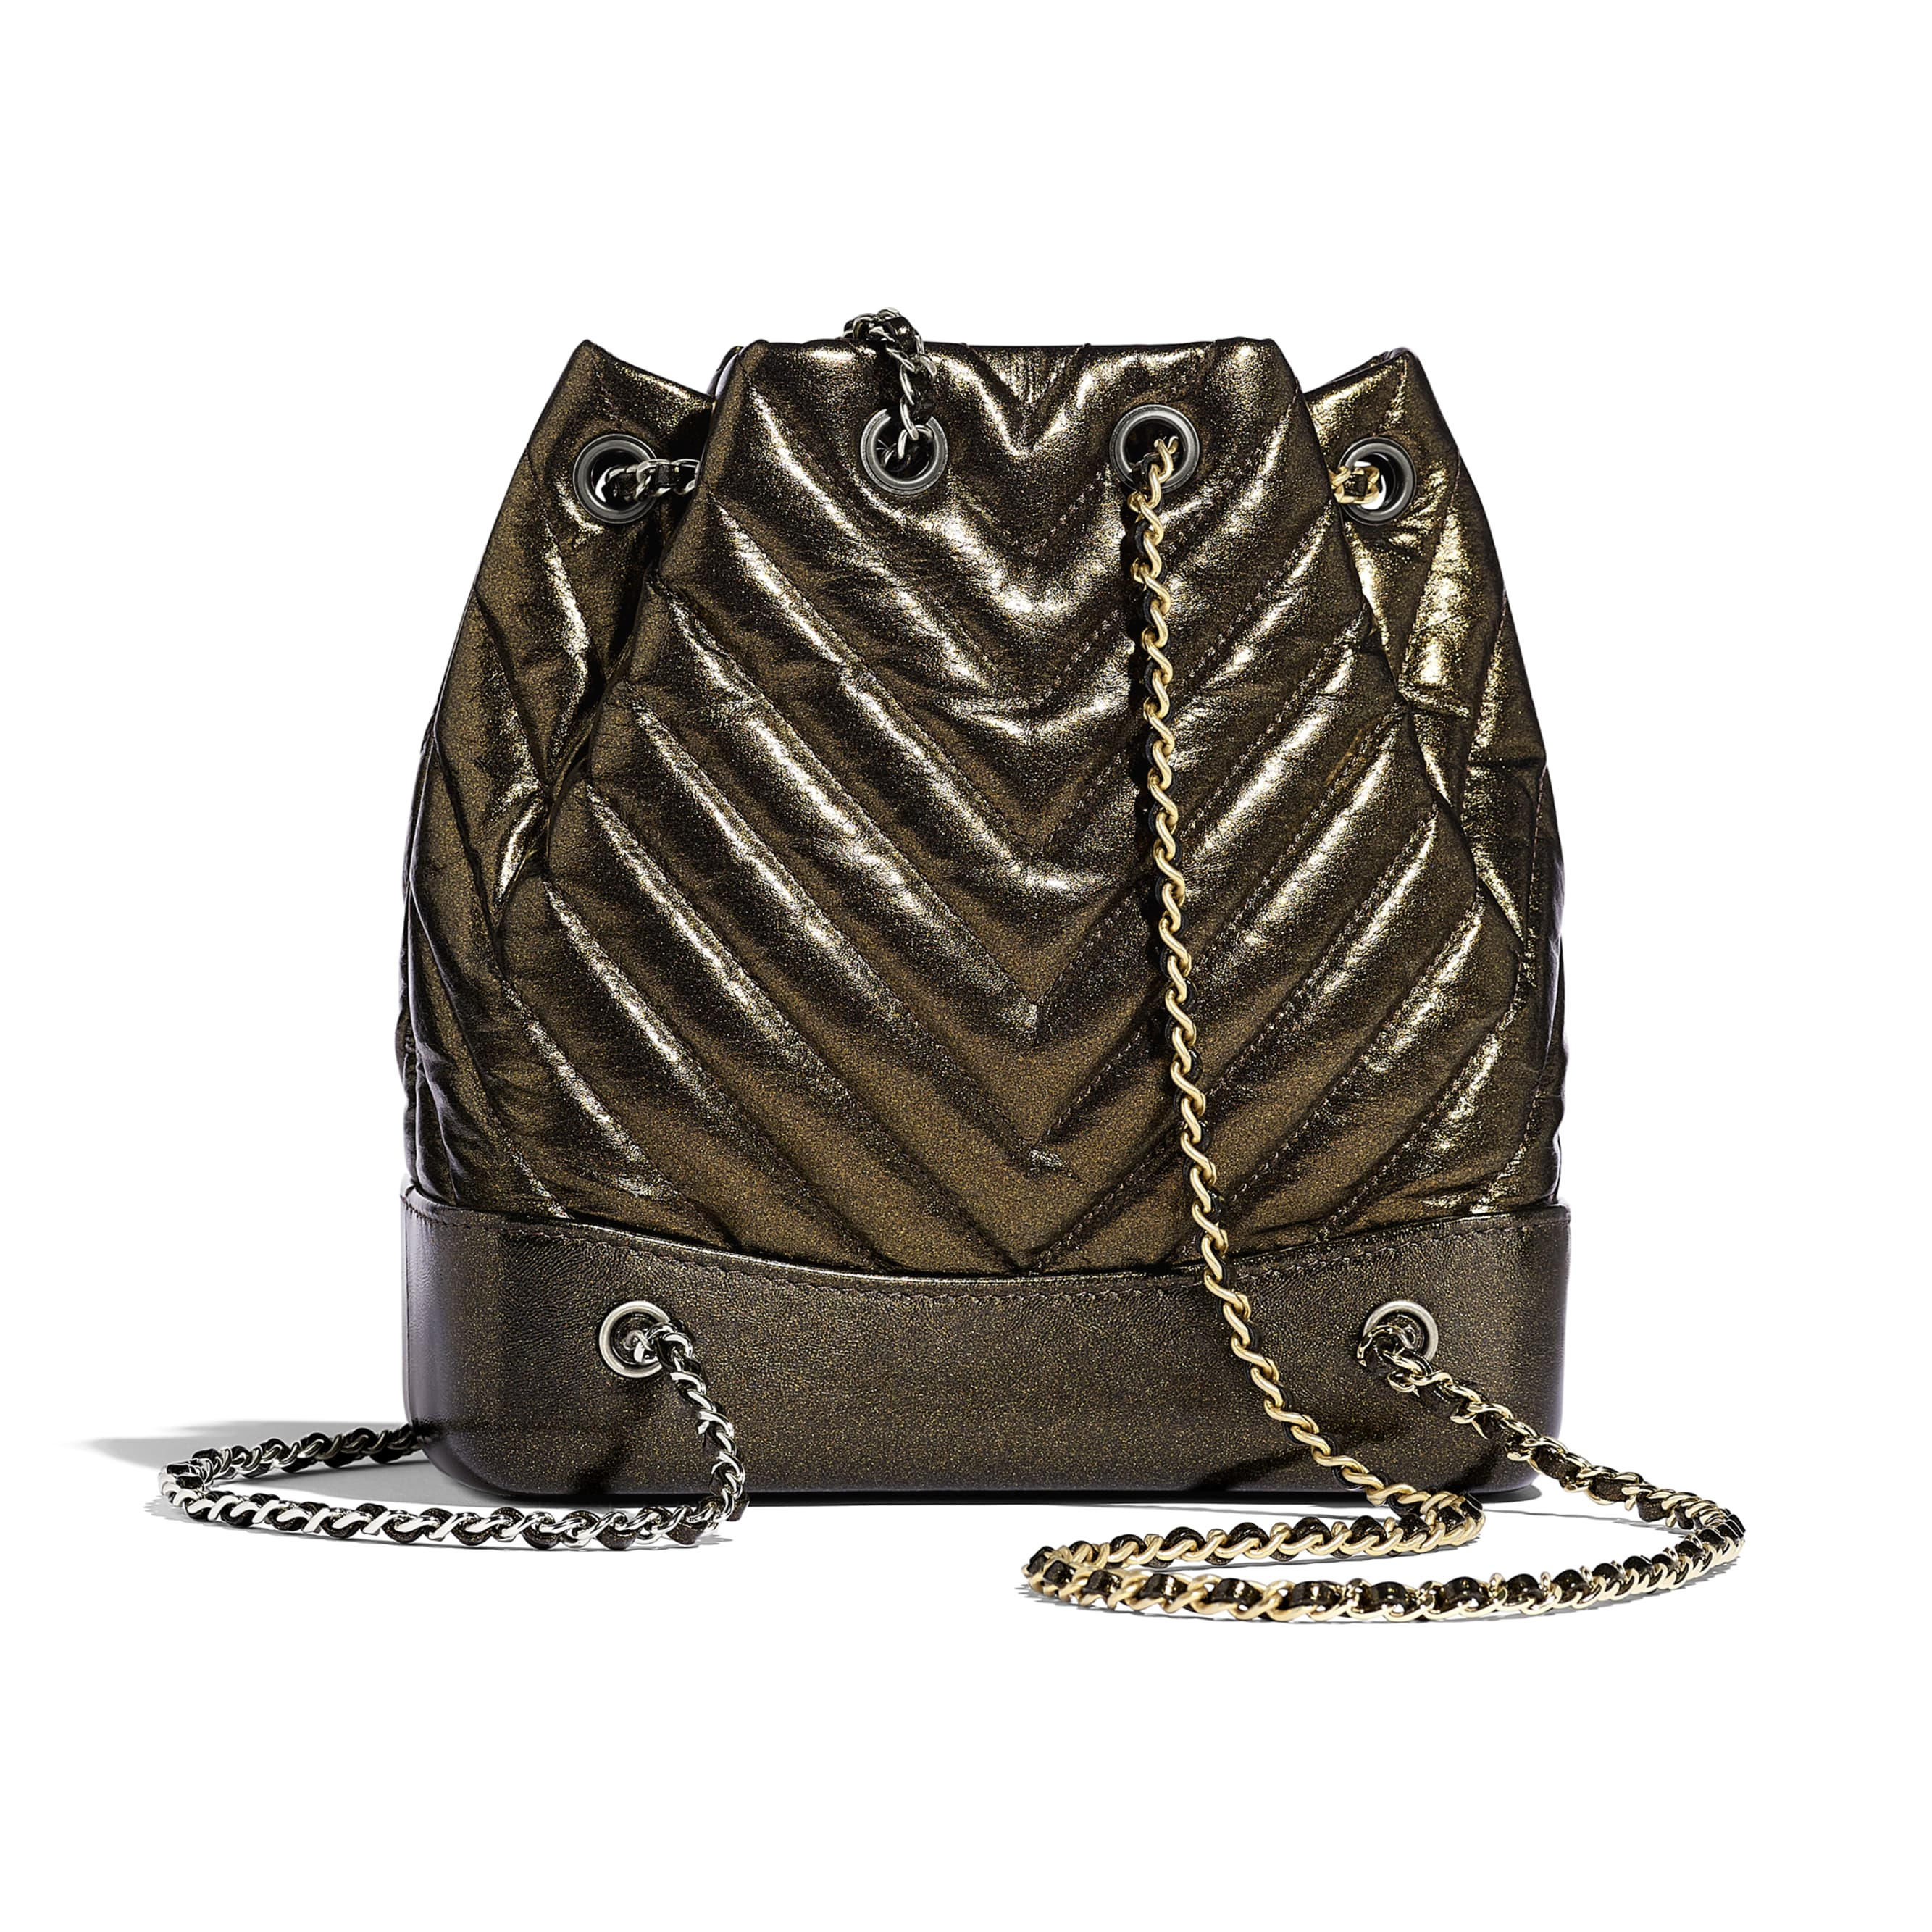 CHANEL'S GABRIELLE Small Backpack - Gold - Aged Calfskin, Silver-Tone & Gold-Tone Metal - Alternative view - see standard sized version